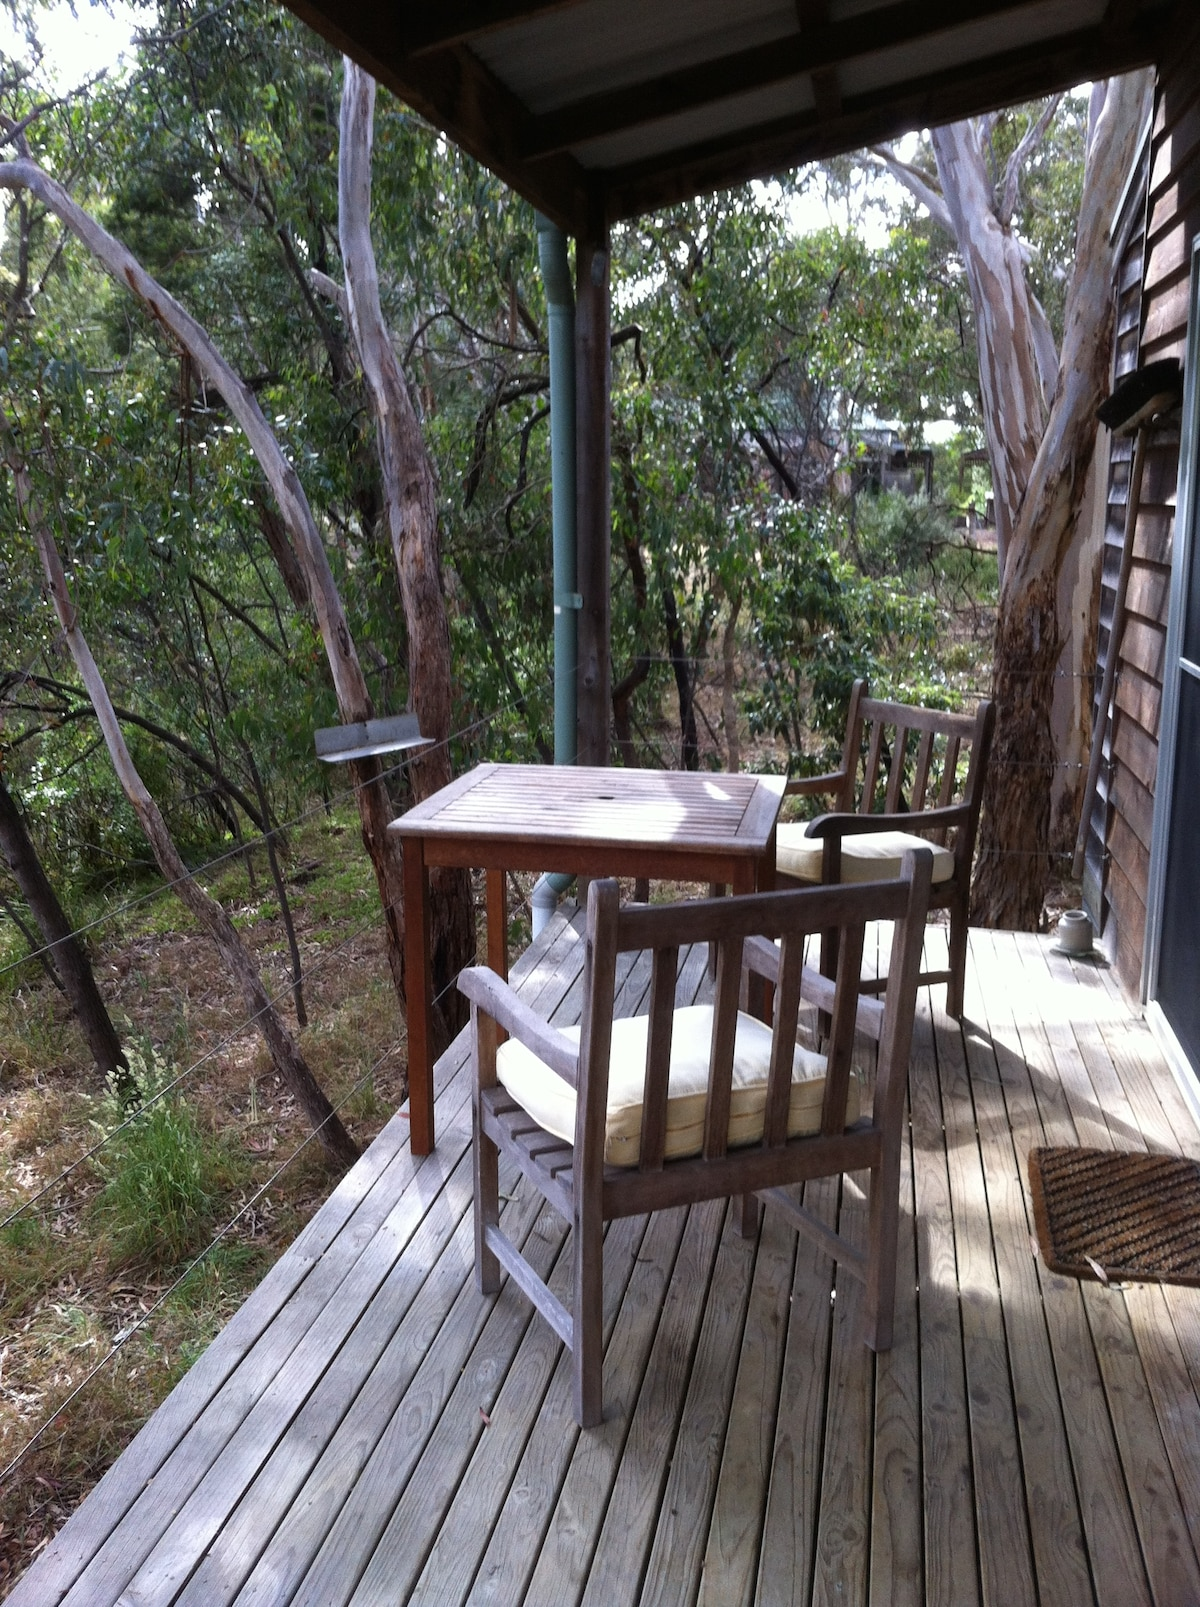 Feed the parrots and possums from the feeders on the trees